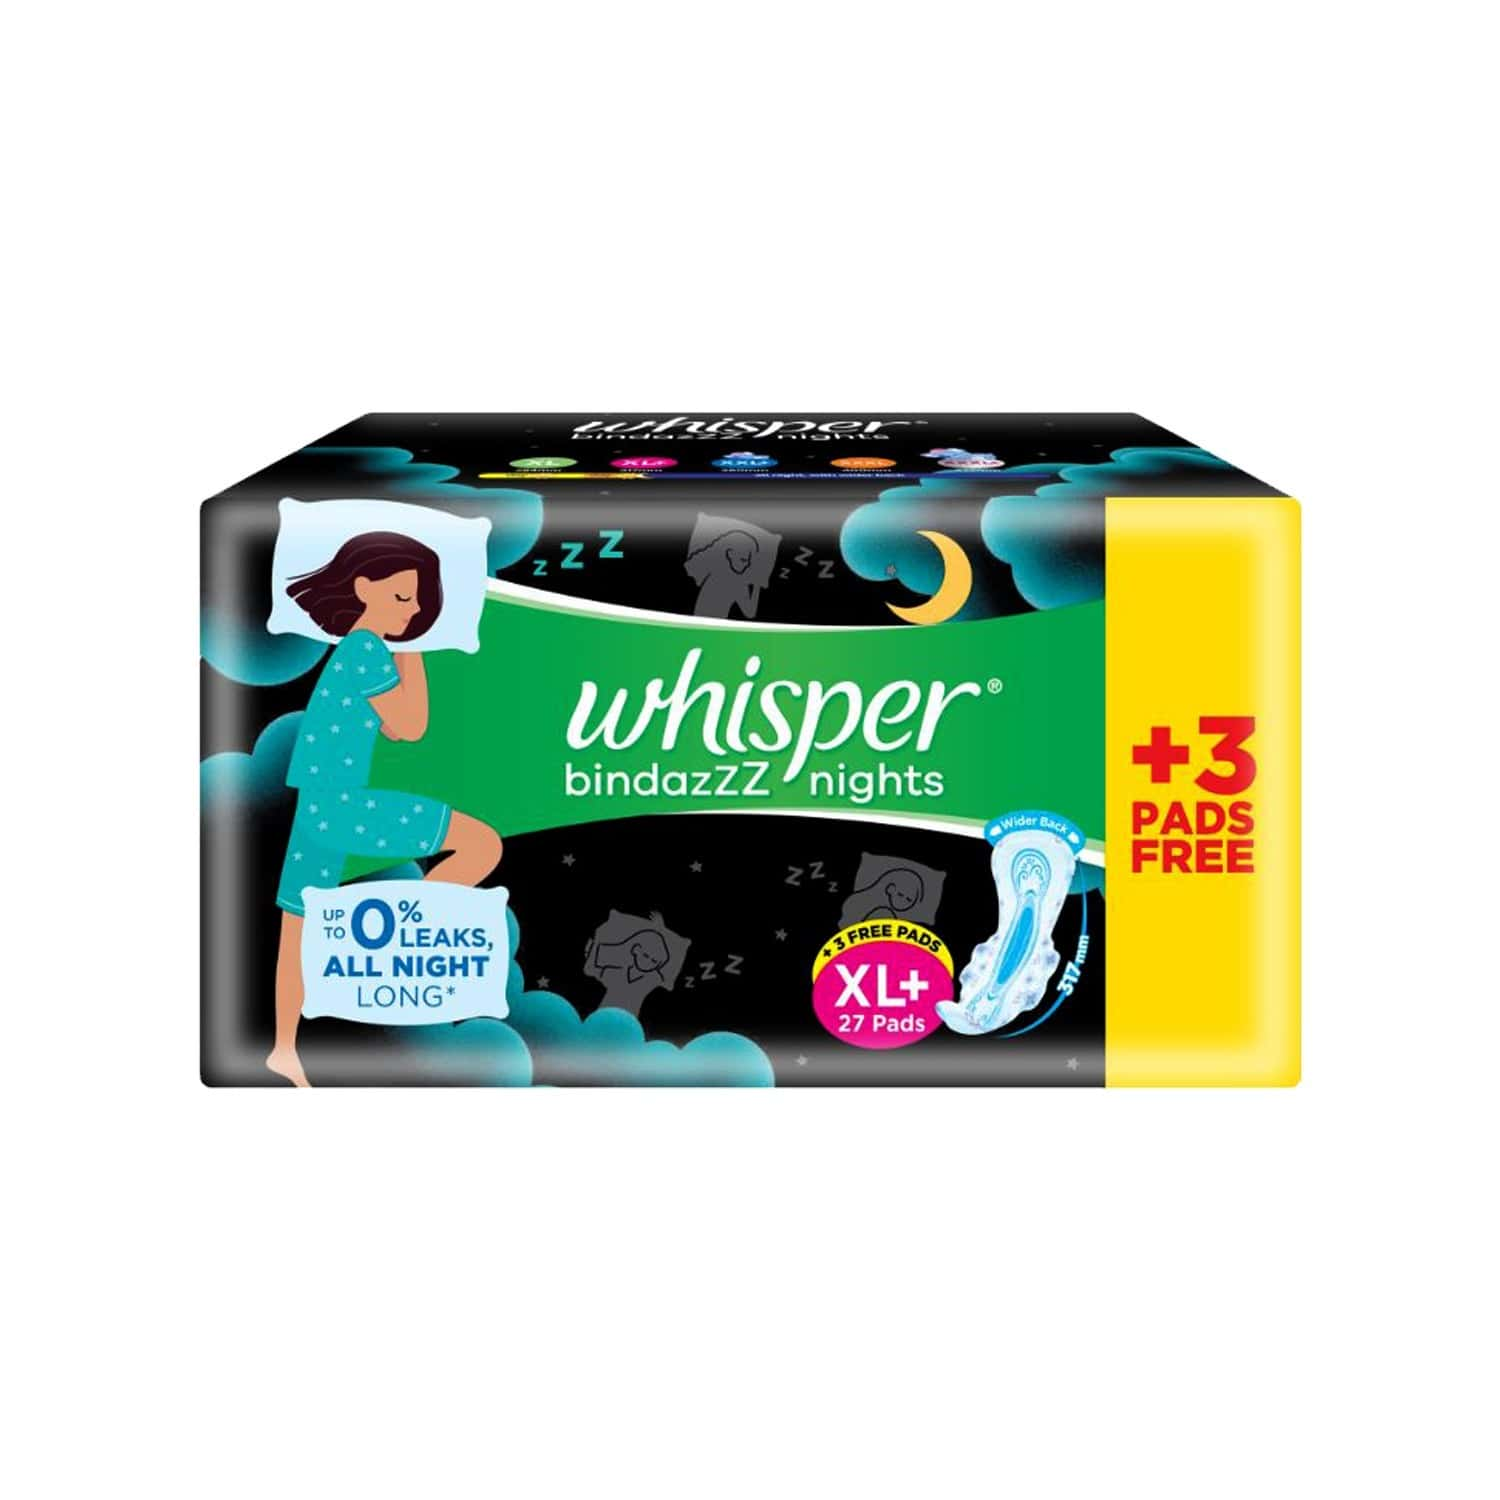 Whisper Bindazzz Nights Xl Plus - 27 Pads With 3 Free Pads